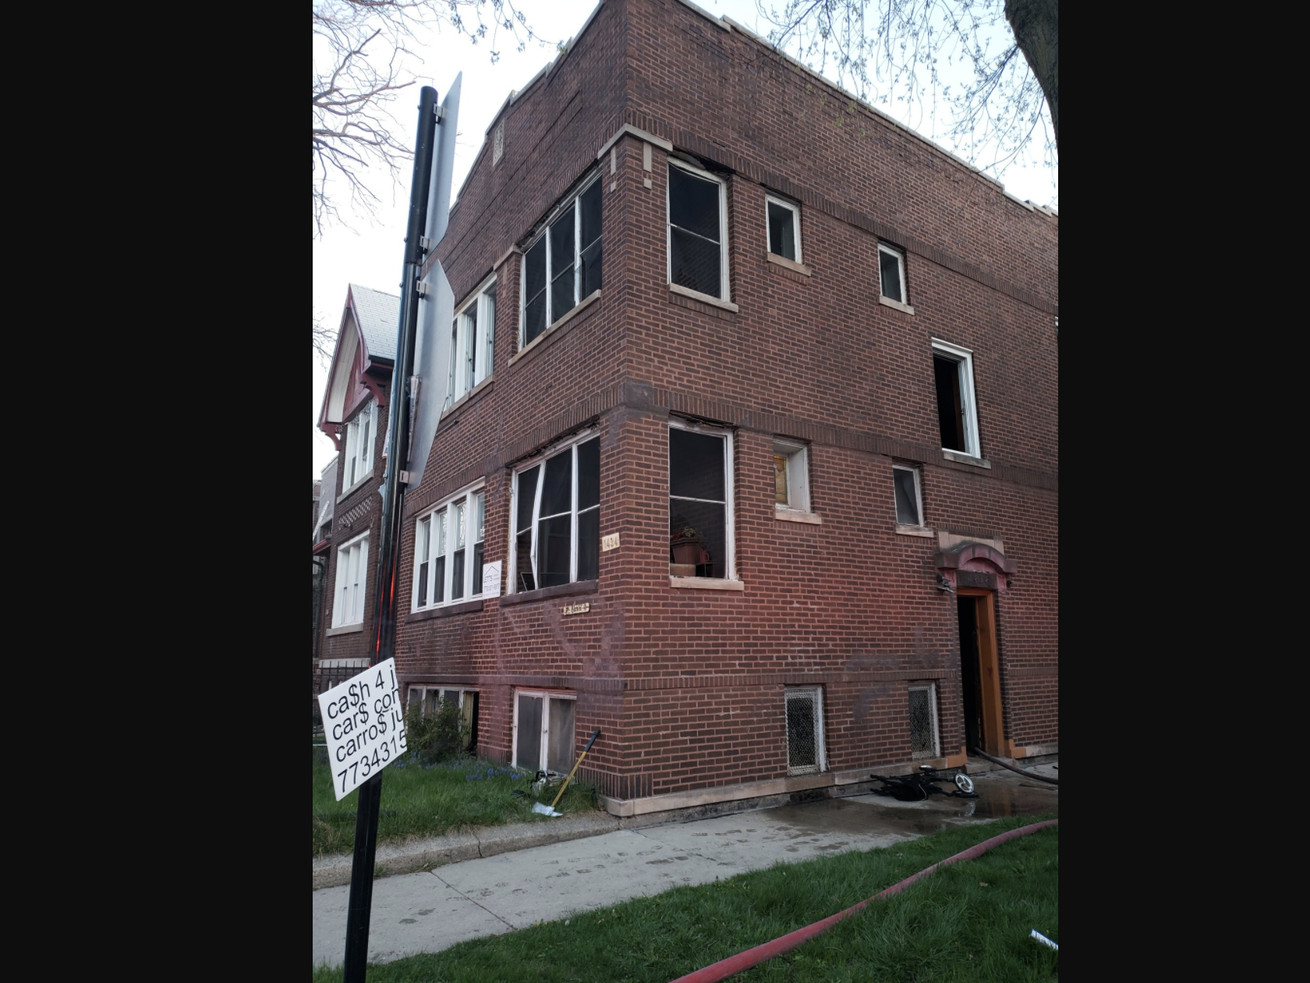 Two people were critically hurt in a fire April 16, 2021 in Back of the Yards.